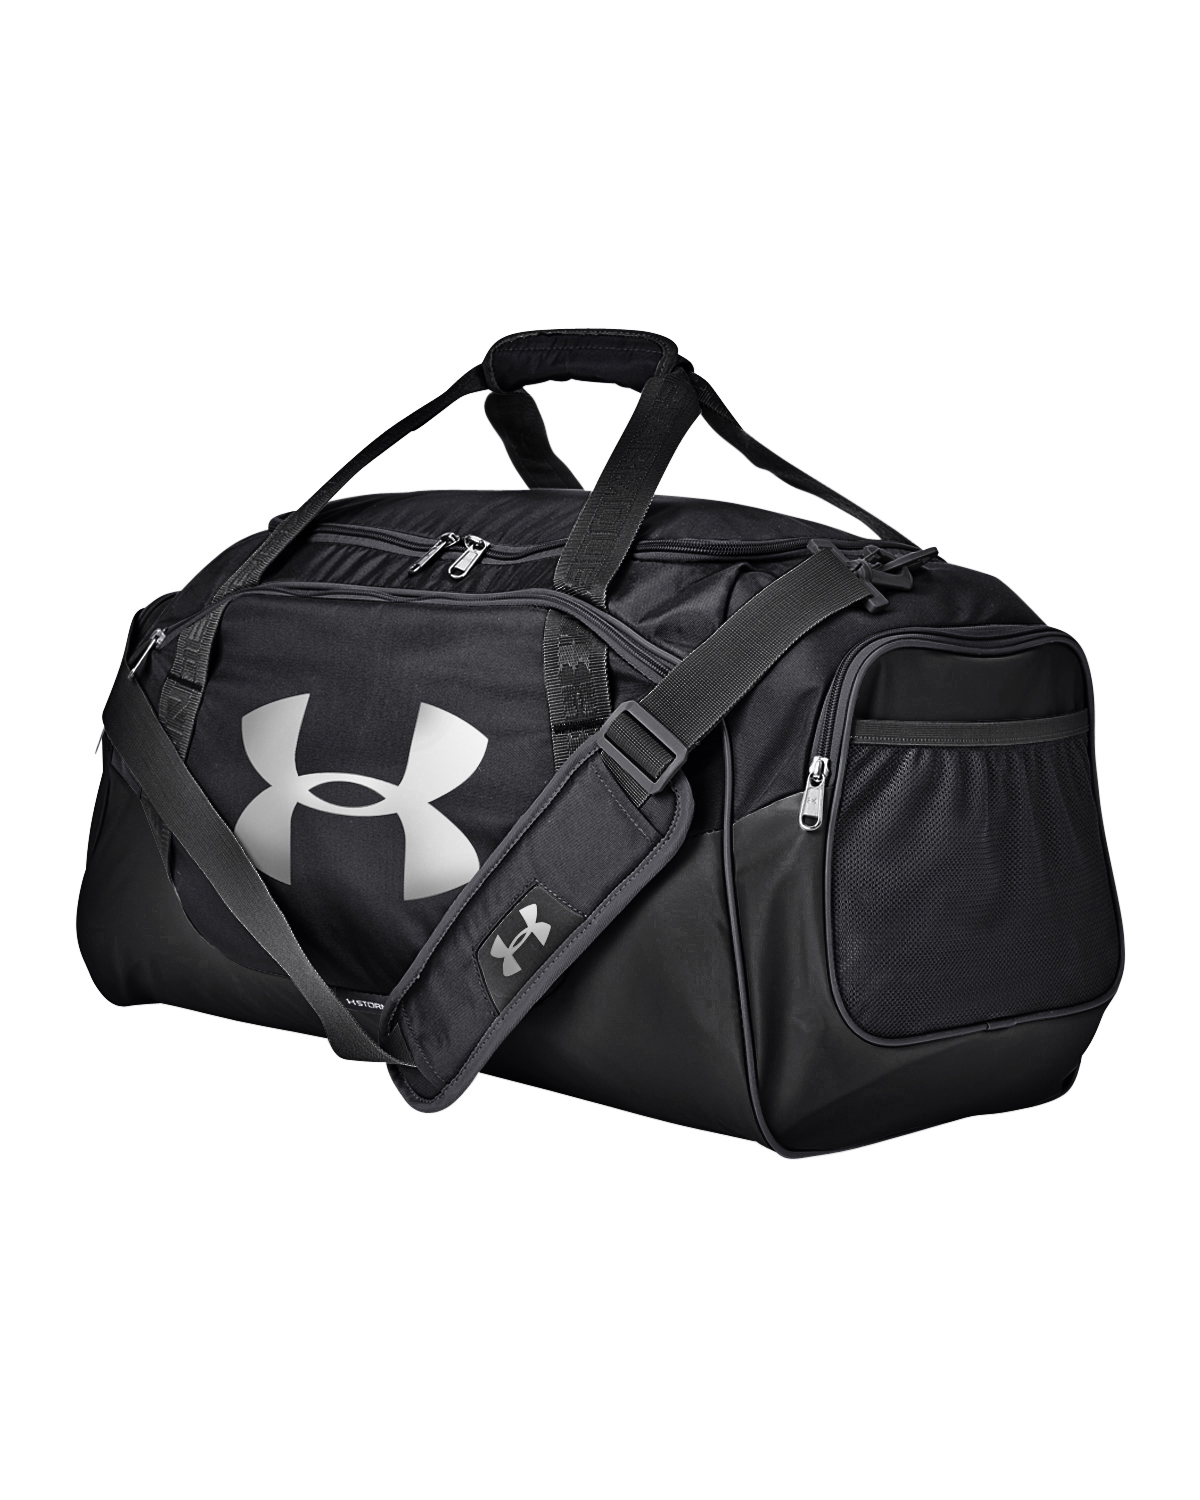 ae342324944 Under Armour 1300216 - UA Undeniable II Duffle Large $41.24 - Bags